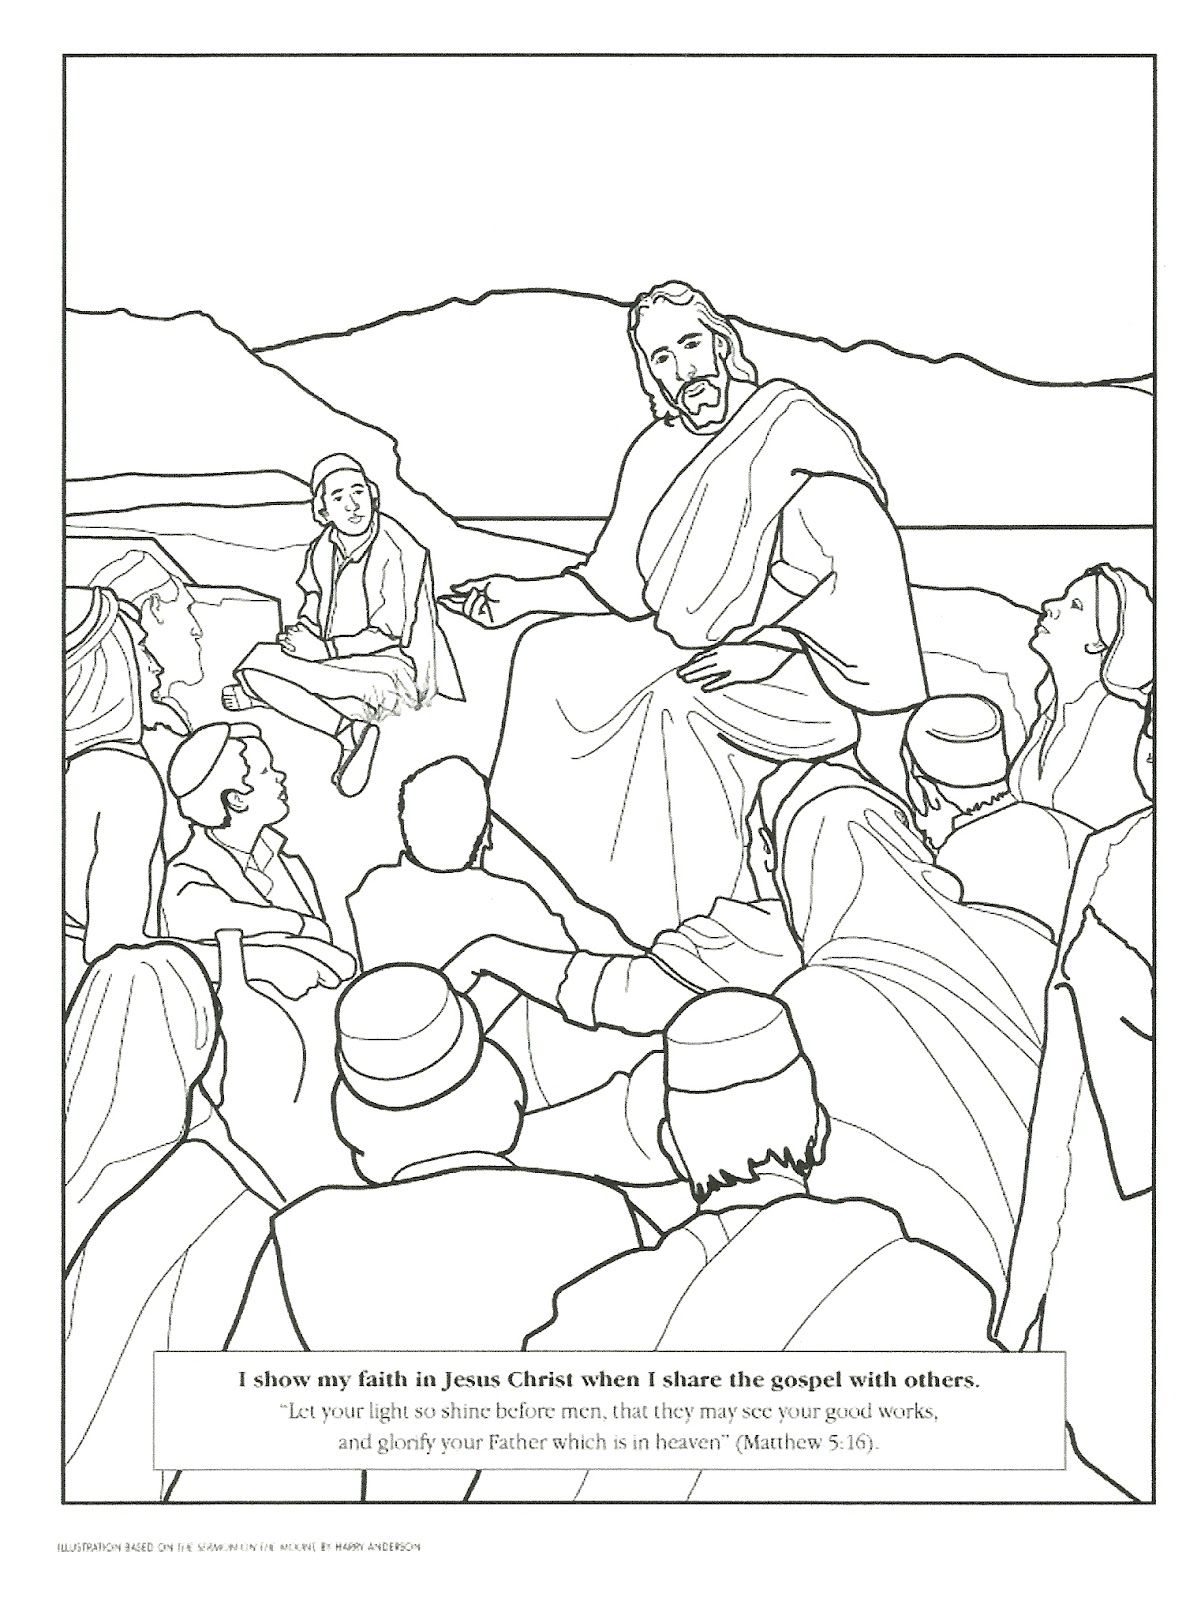 Primary 2 Lesson 22 Jesus Coloring Pages Bible Coloring Pages